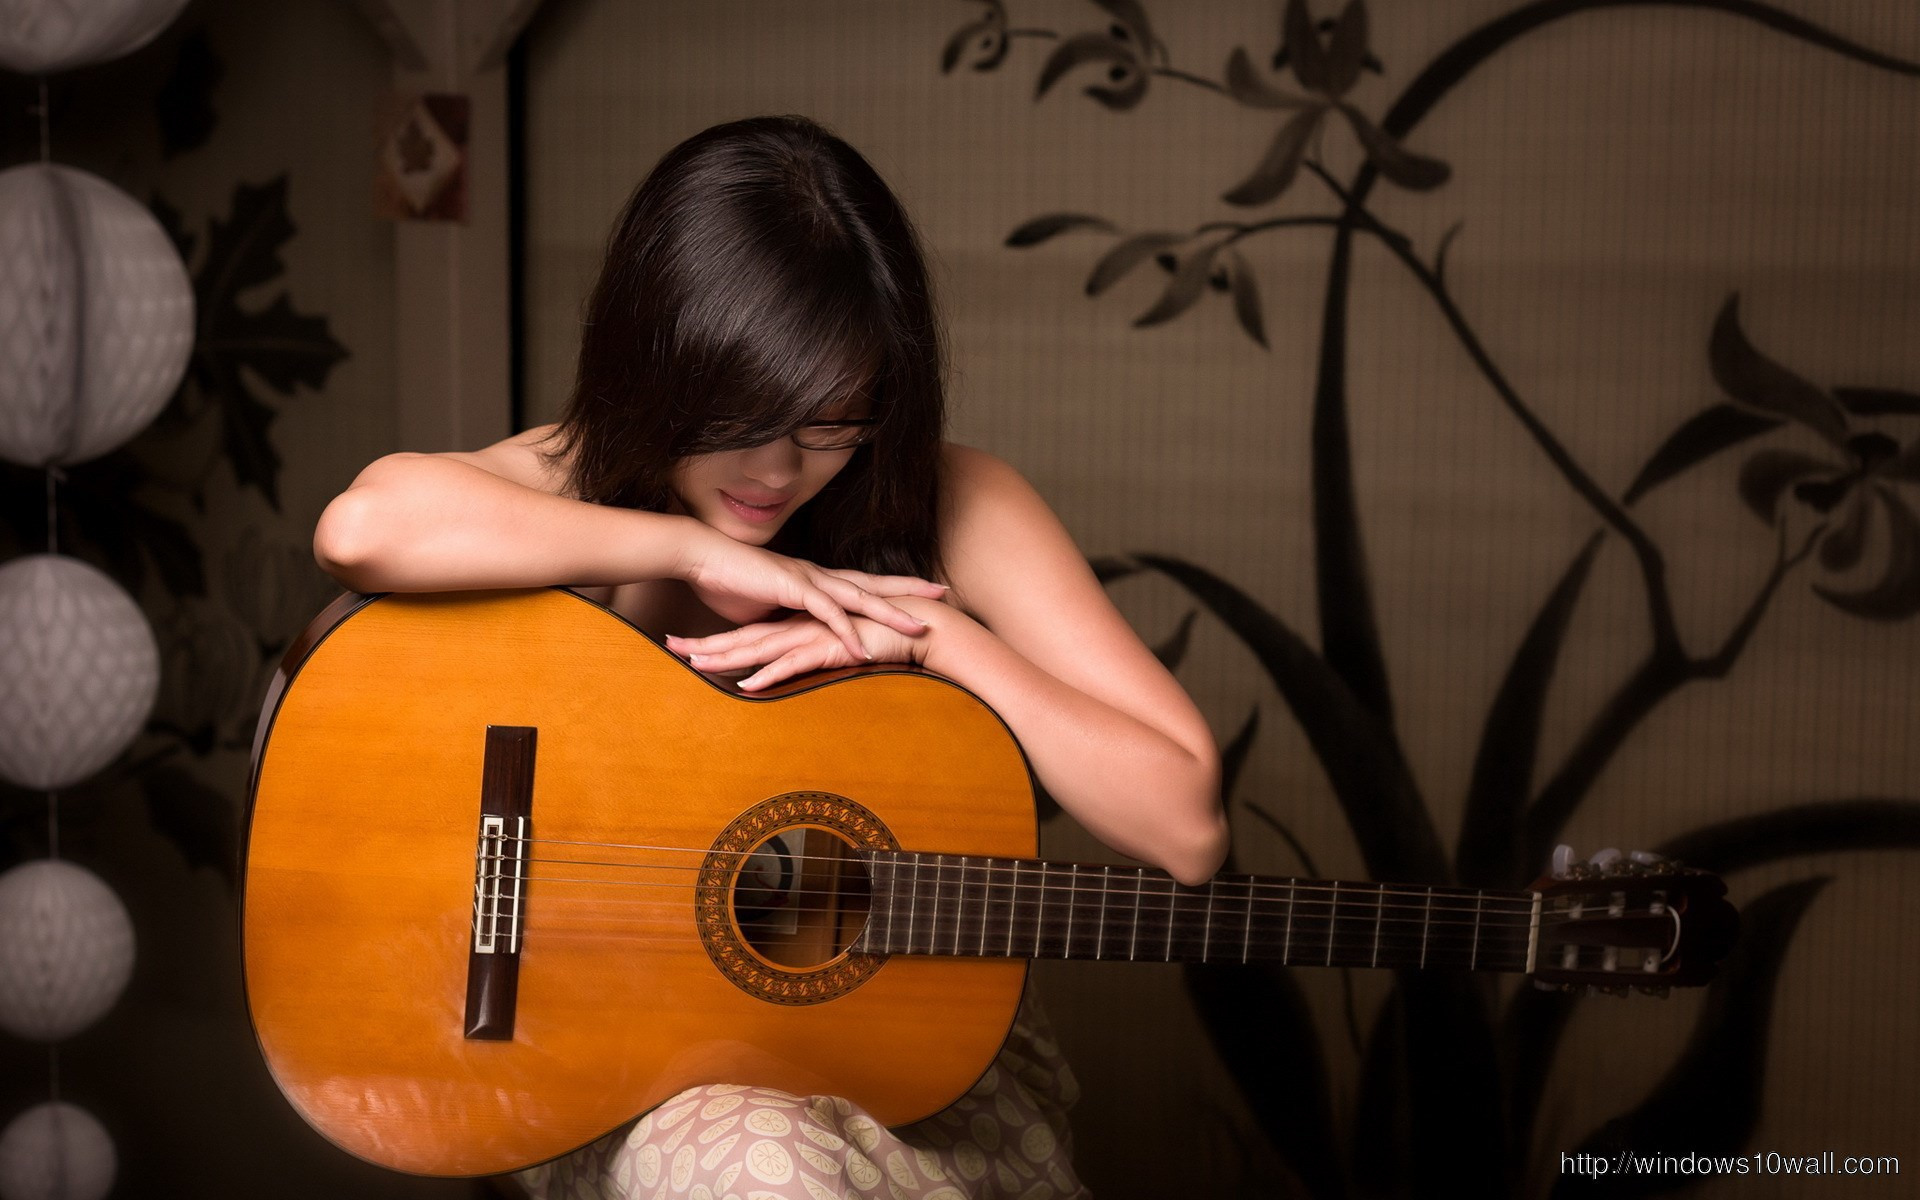 girl-and-guitar-wallpaper